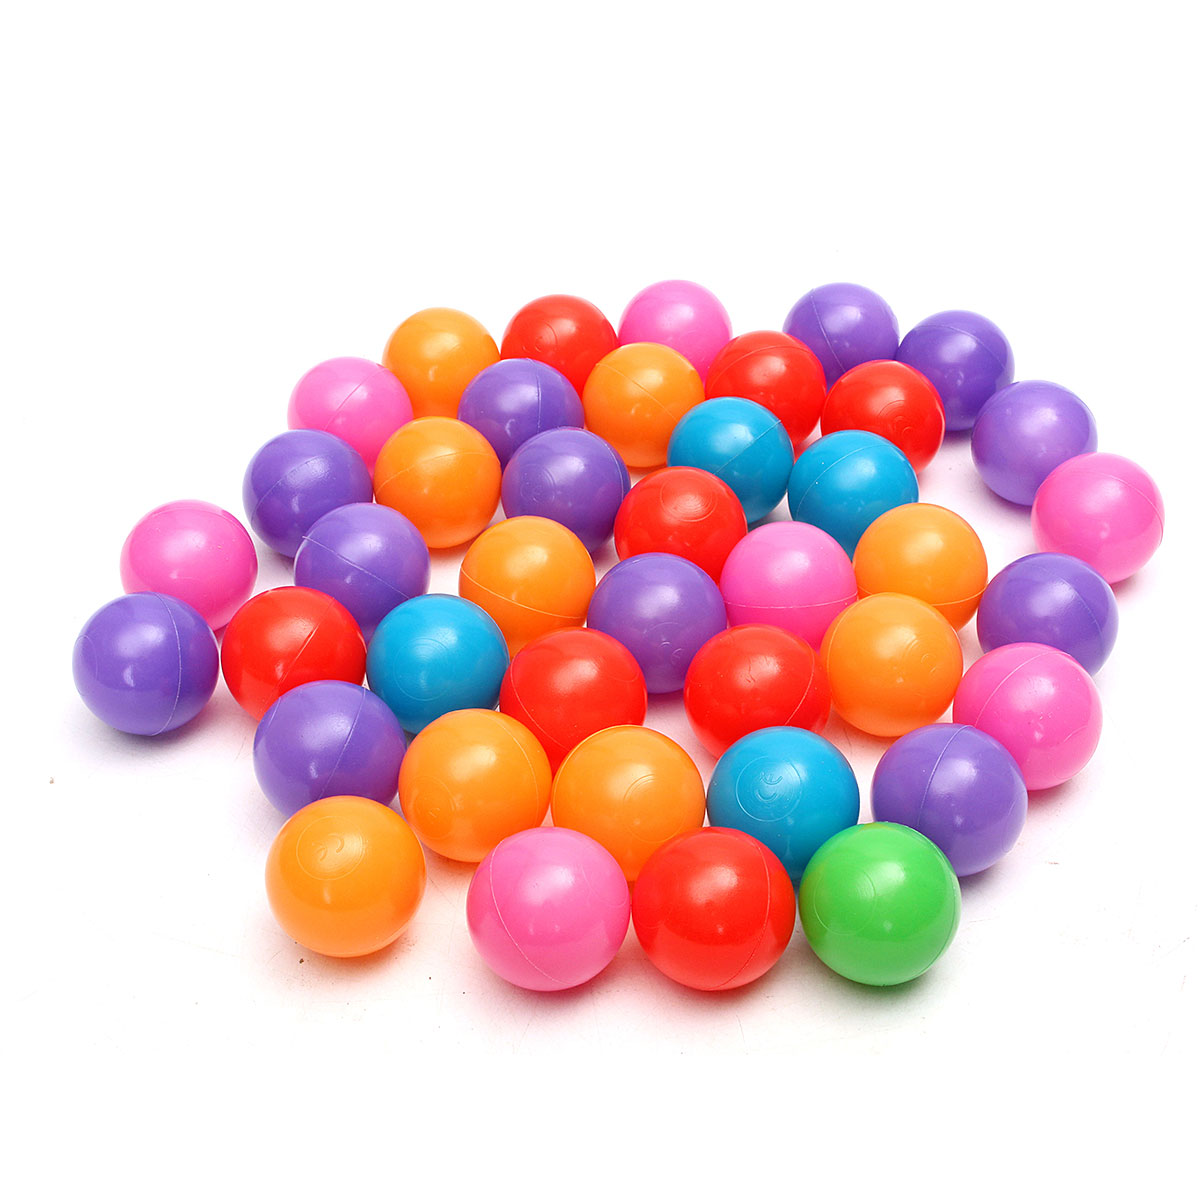 200pcs 4cm Colorful Ball Soft Plastic Ocean Ball Funny Baby Kid Swim Pit Toy Water Pool Ocean Wave Ball(China (Mainland))